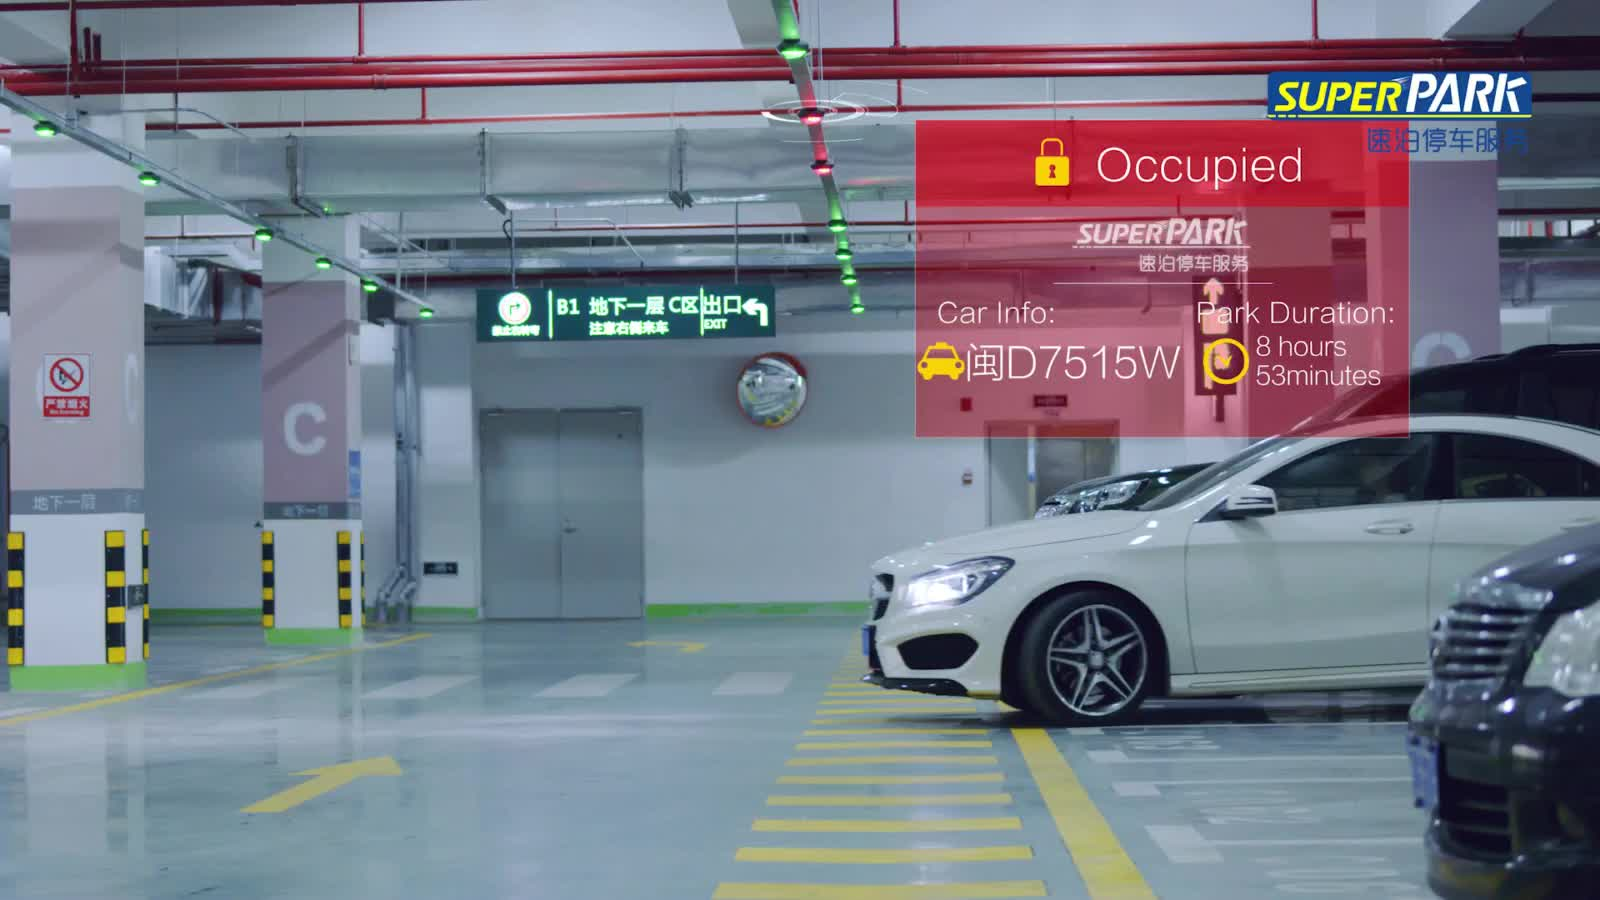 Camera Parking Guidance and Management System